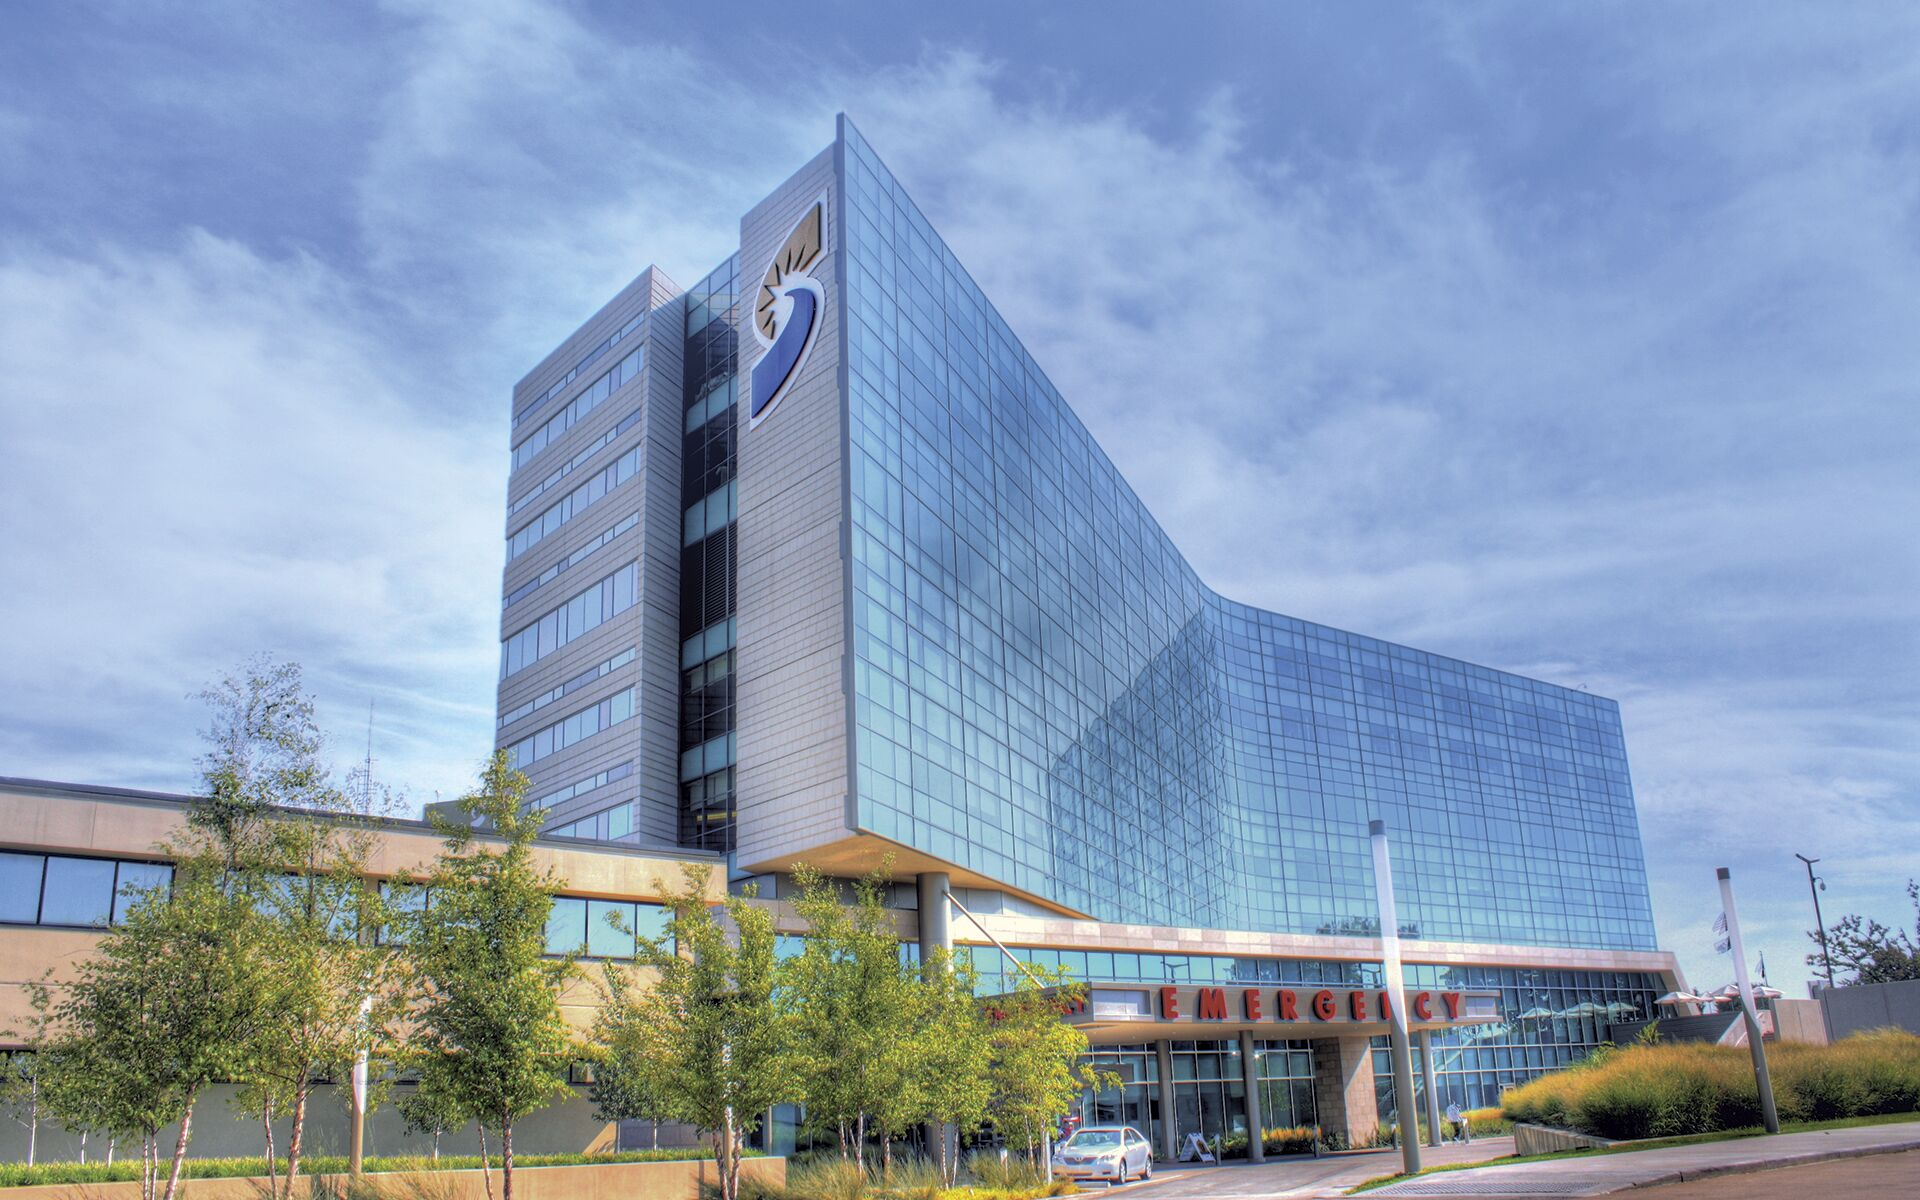 AdventHealth Shawnee Mission